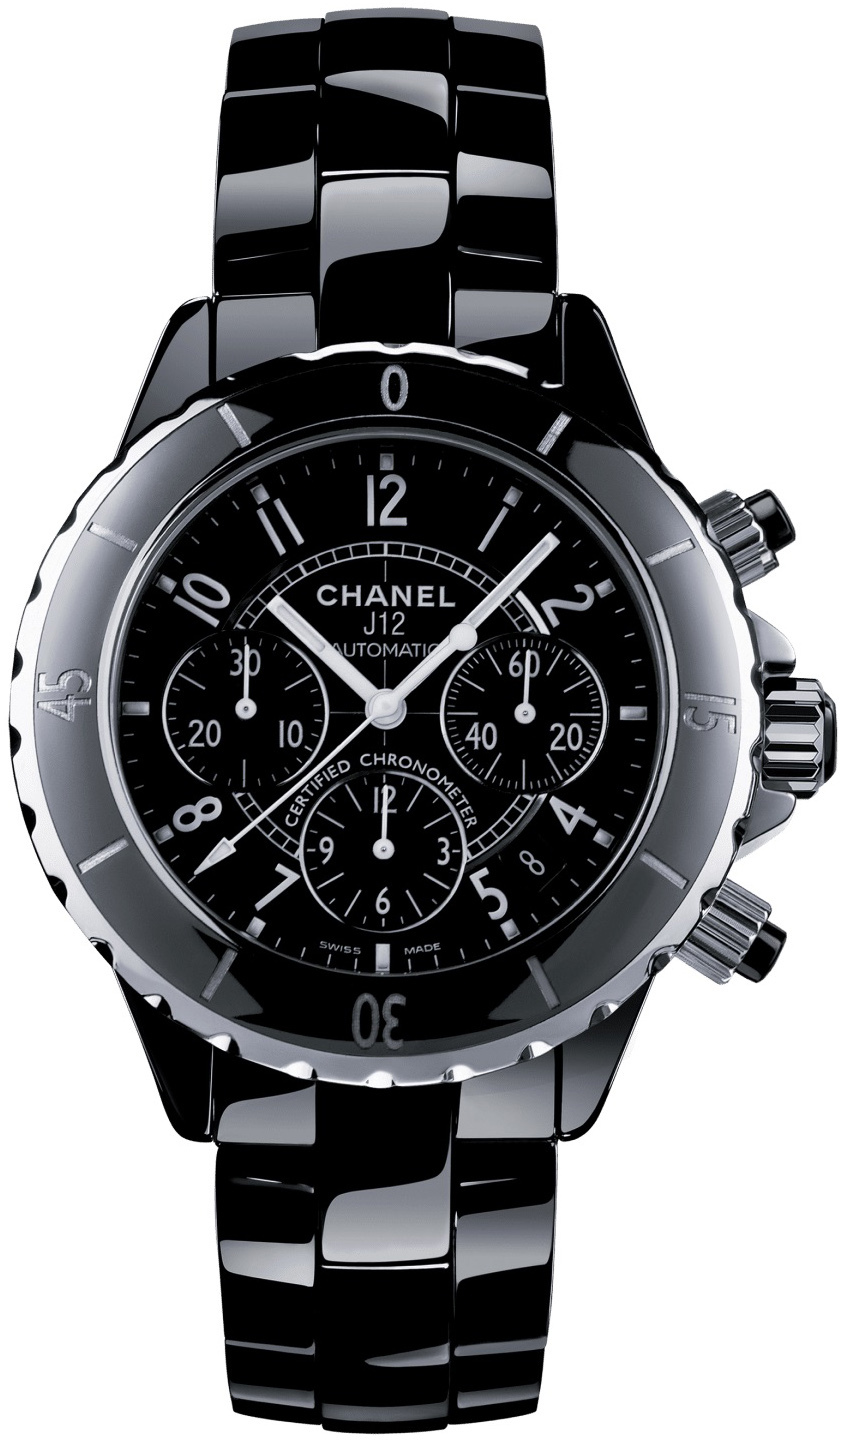 Chanel J12 Chronograph H0940 Svart/Keramik Ø41 mm - Chanel